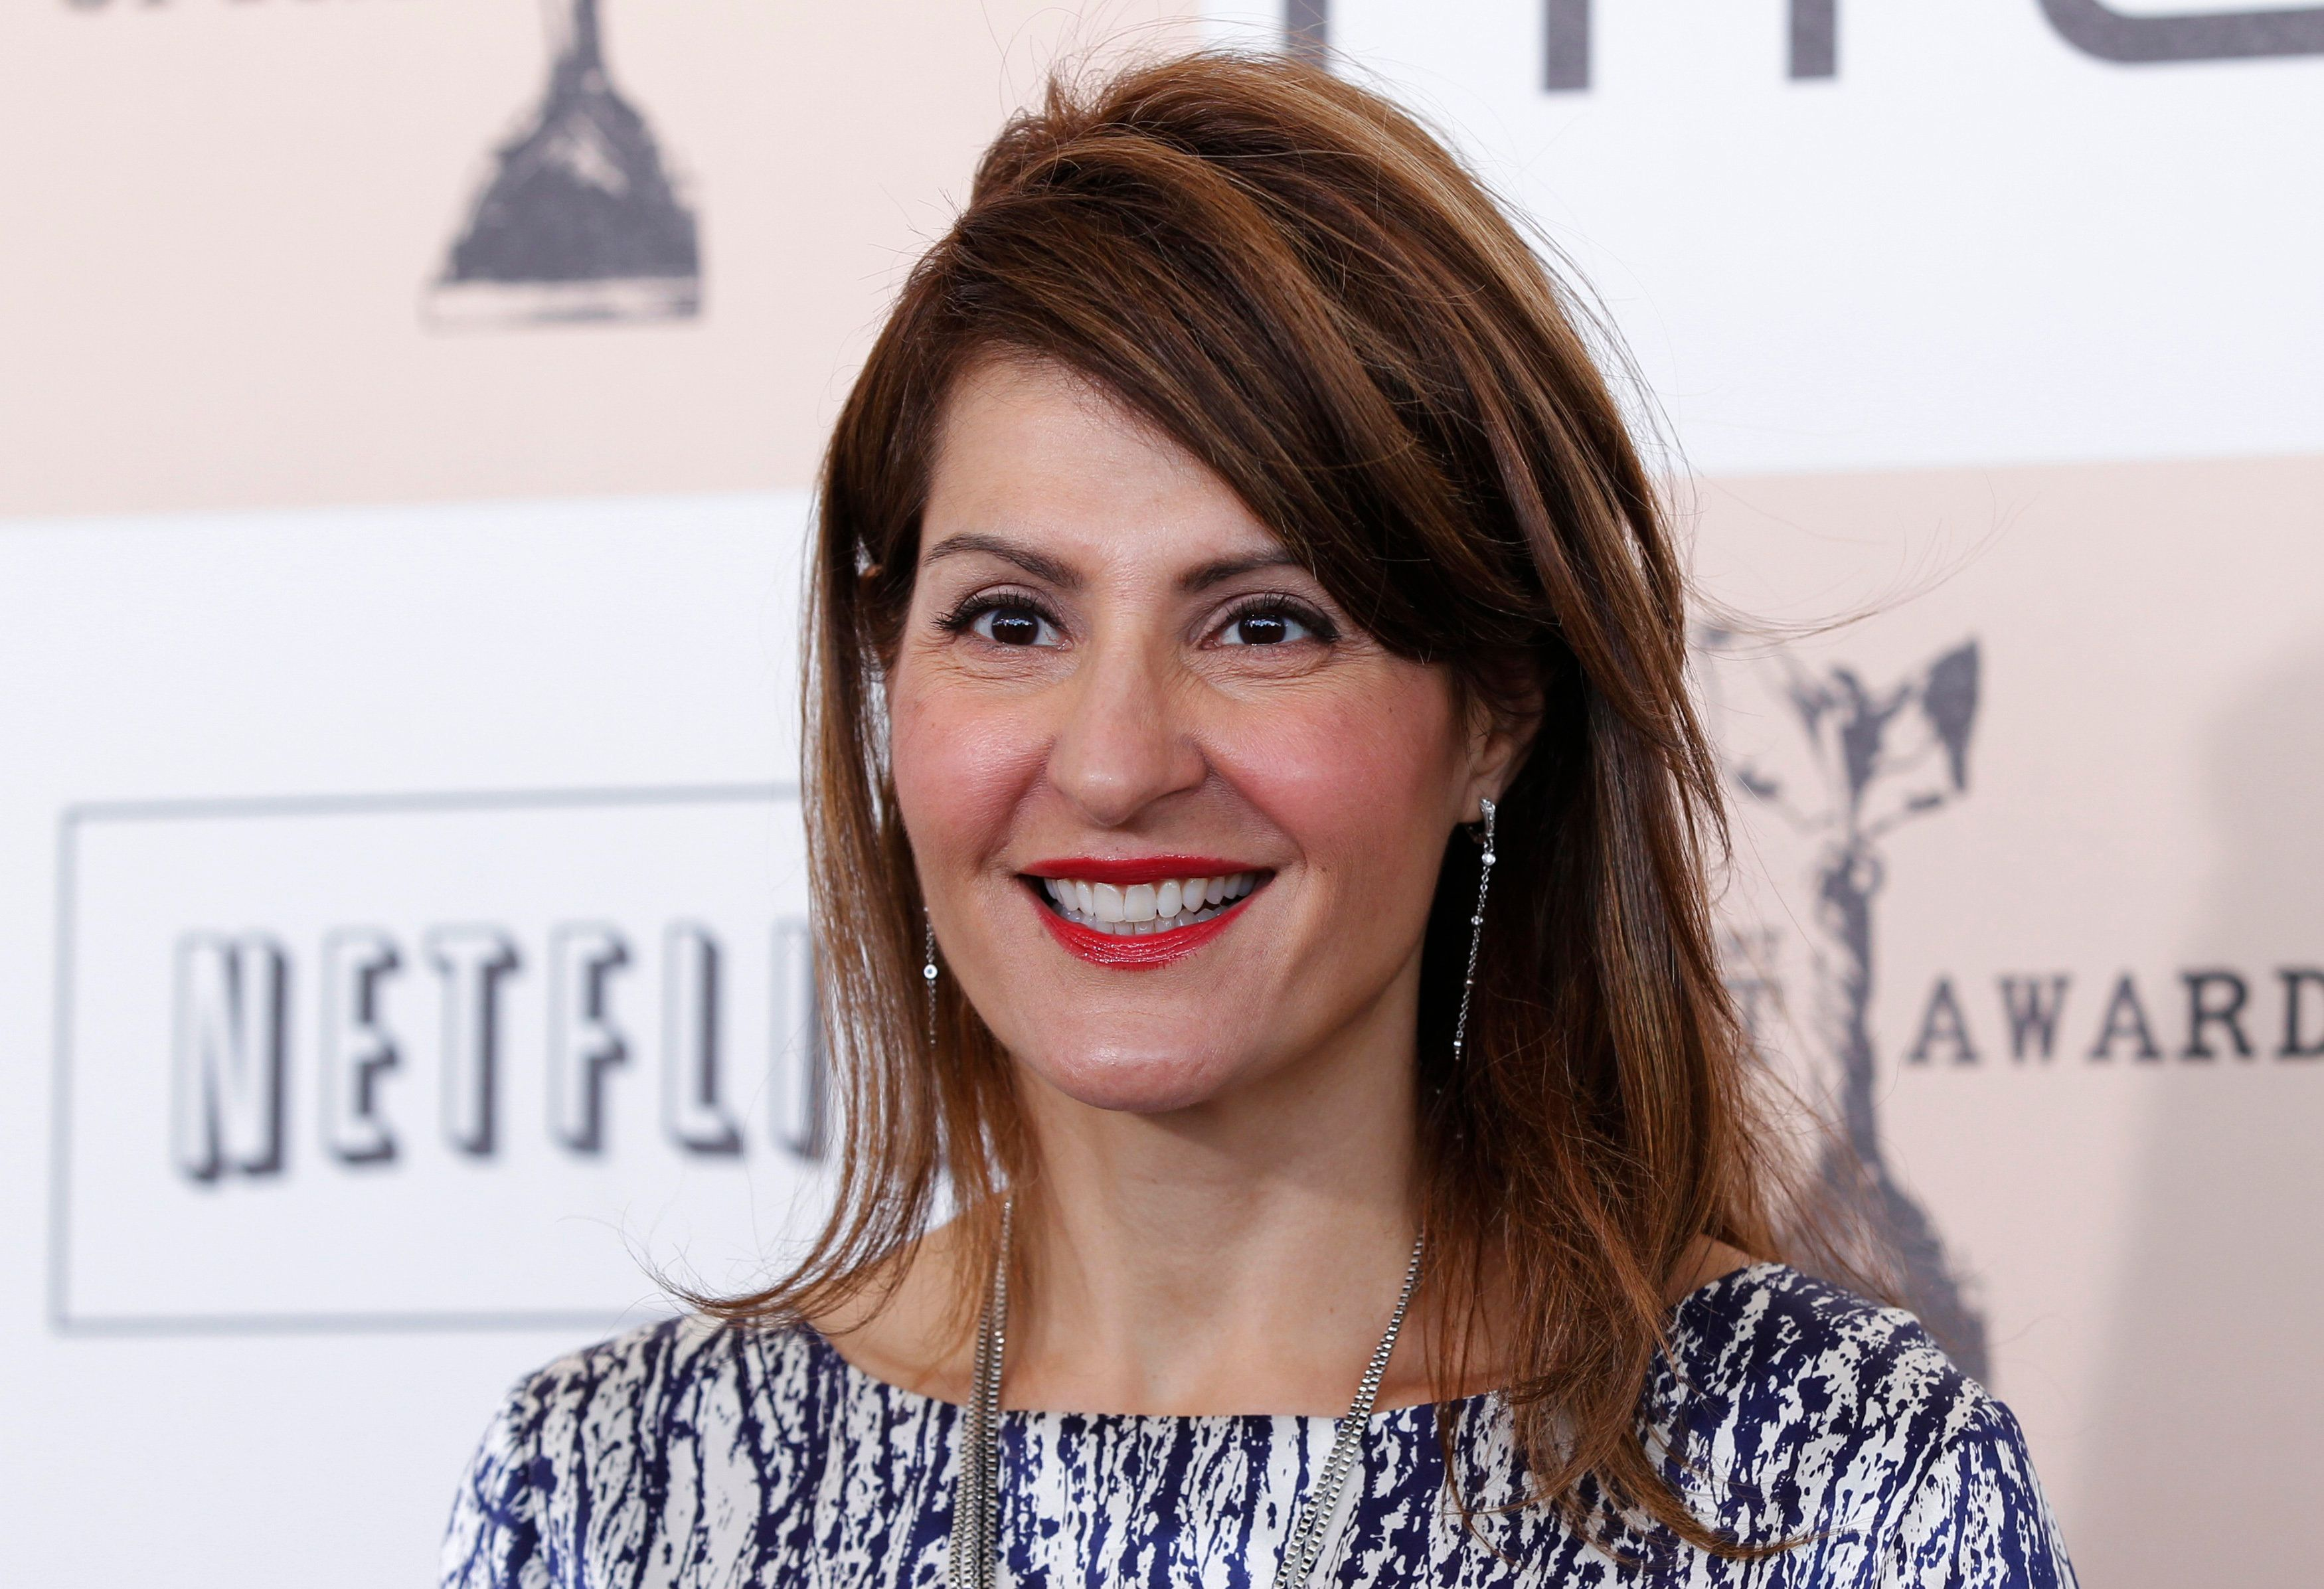 Actress Nia Vardalos arrives at the 2011 Film Independent Spirit Awards in Santa Monica, California February 26, 2011.  REUTERS/Danny Moloshok (UNITED STATES  - Tags: ENTERTAINMENT)